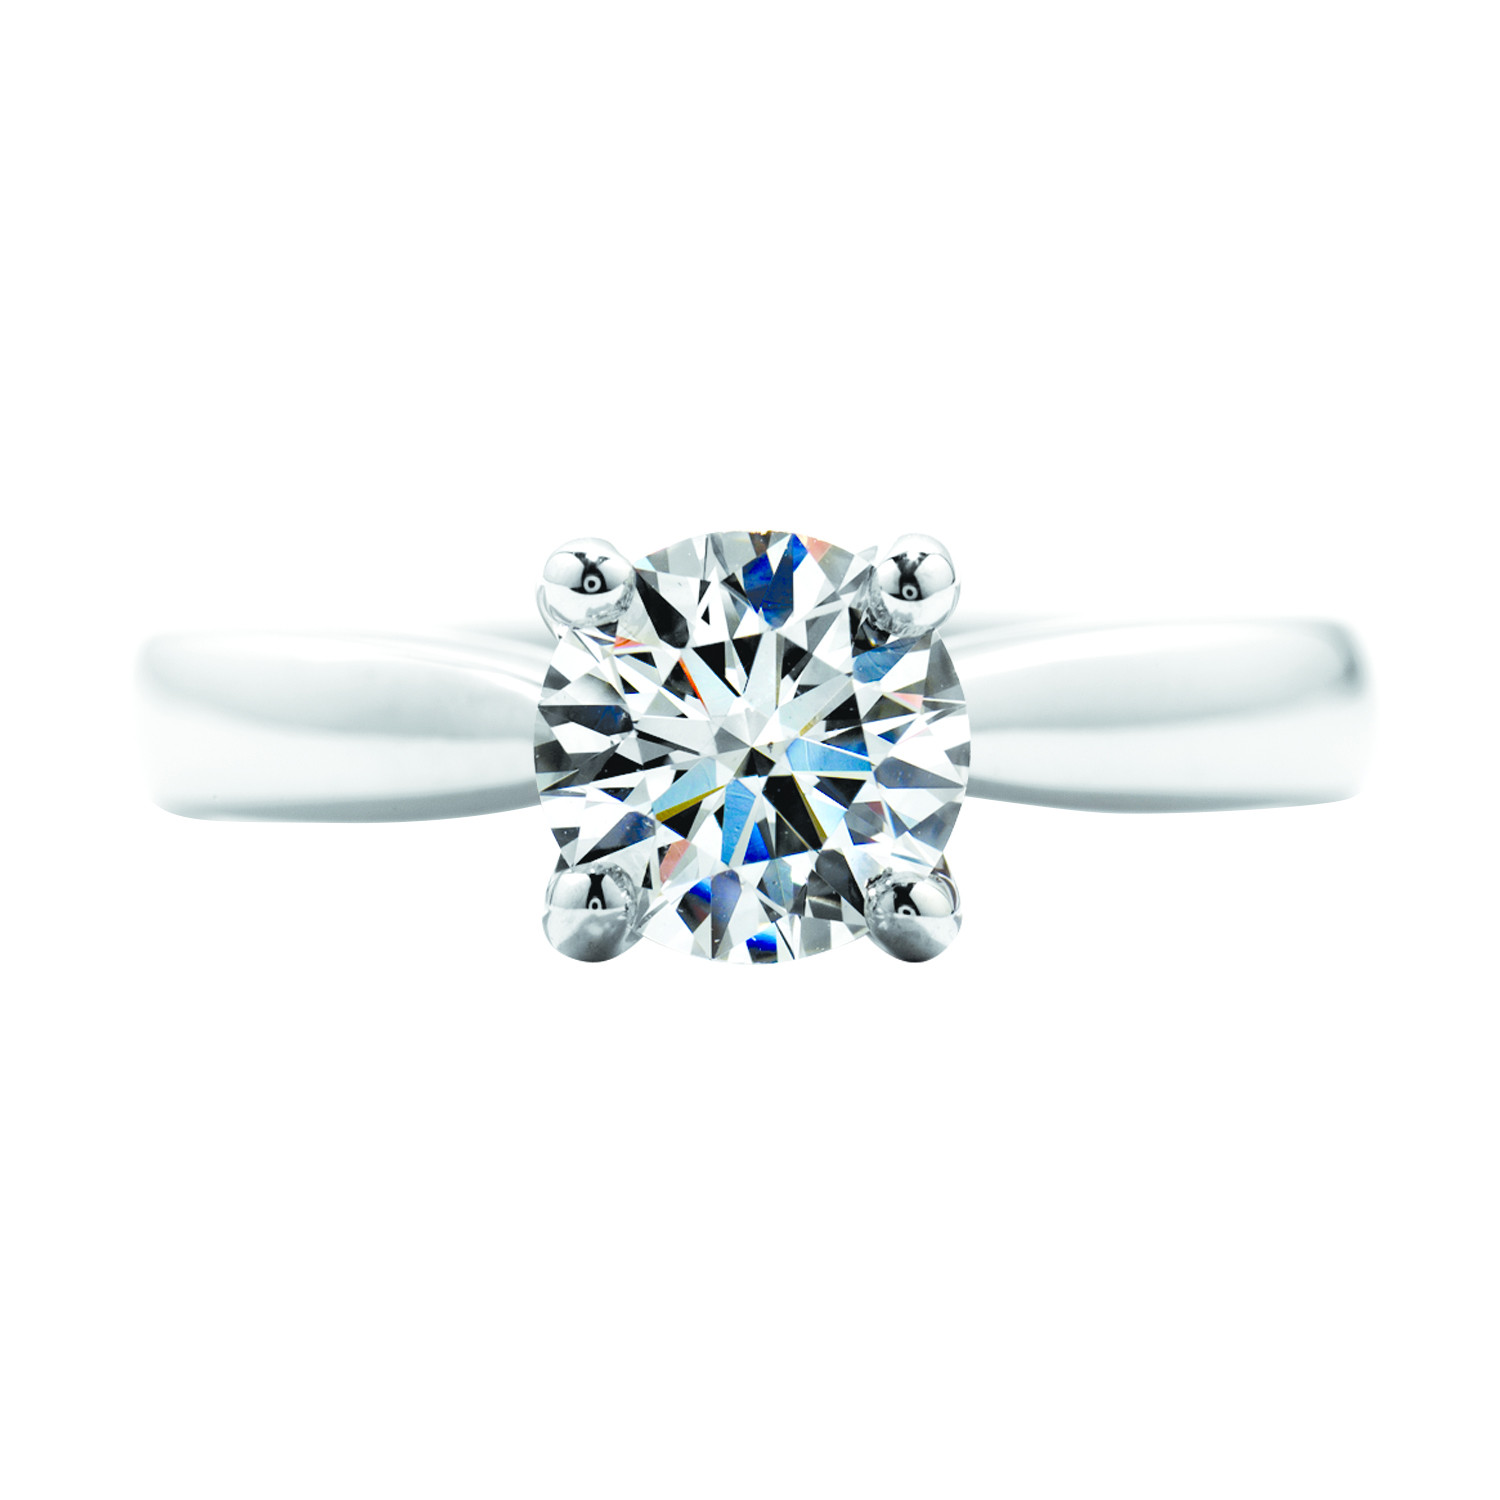 New Hearts On Fire® 1.59 CT Diamond Serenity Solitaire Engagement Ring